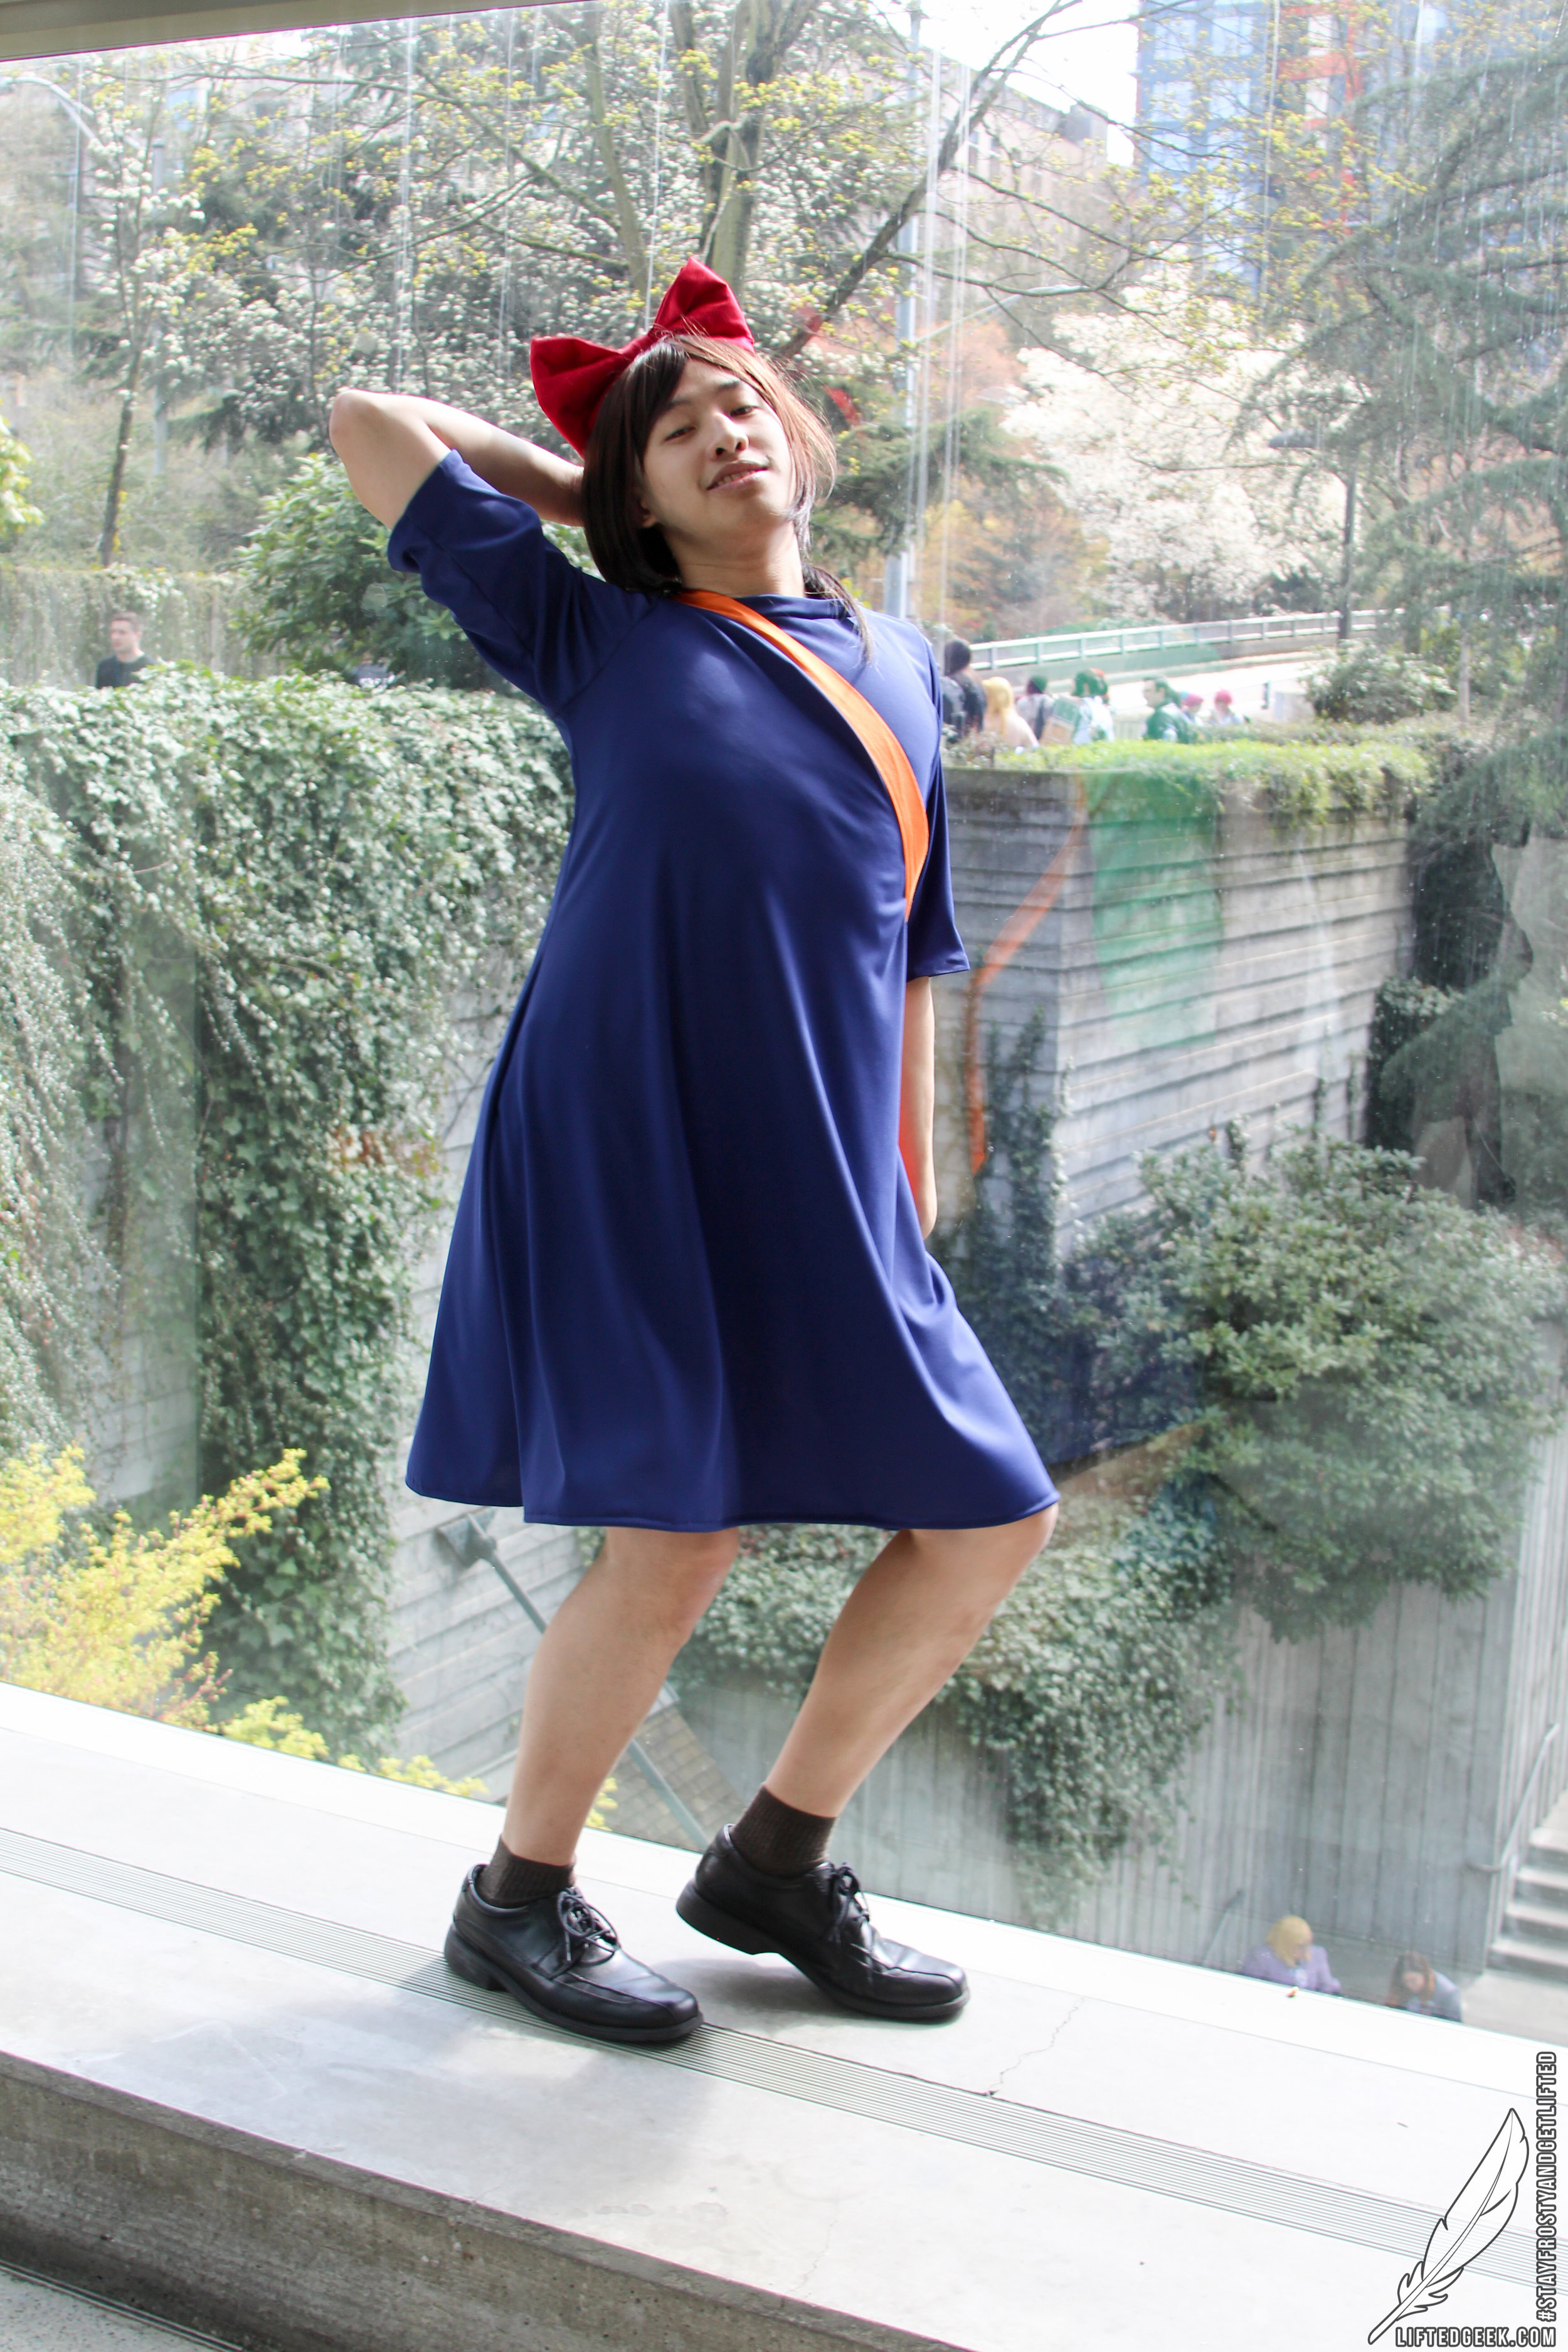 Sakuracon-cosplay-12.jpg